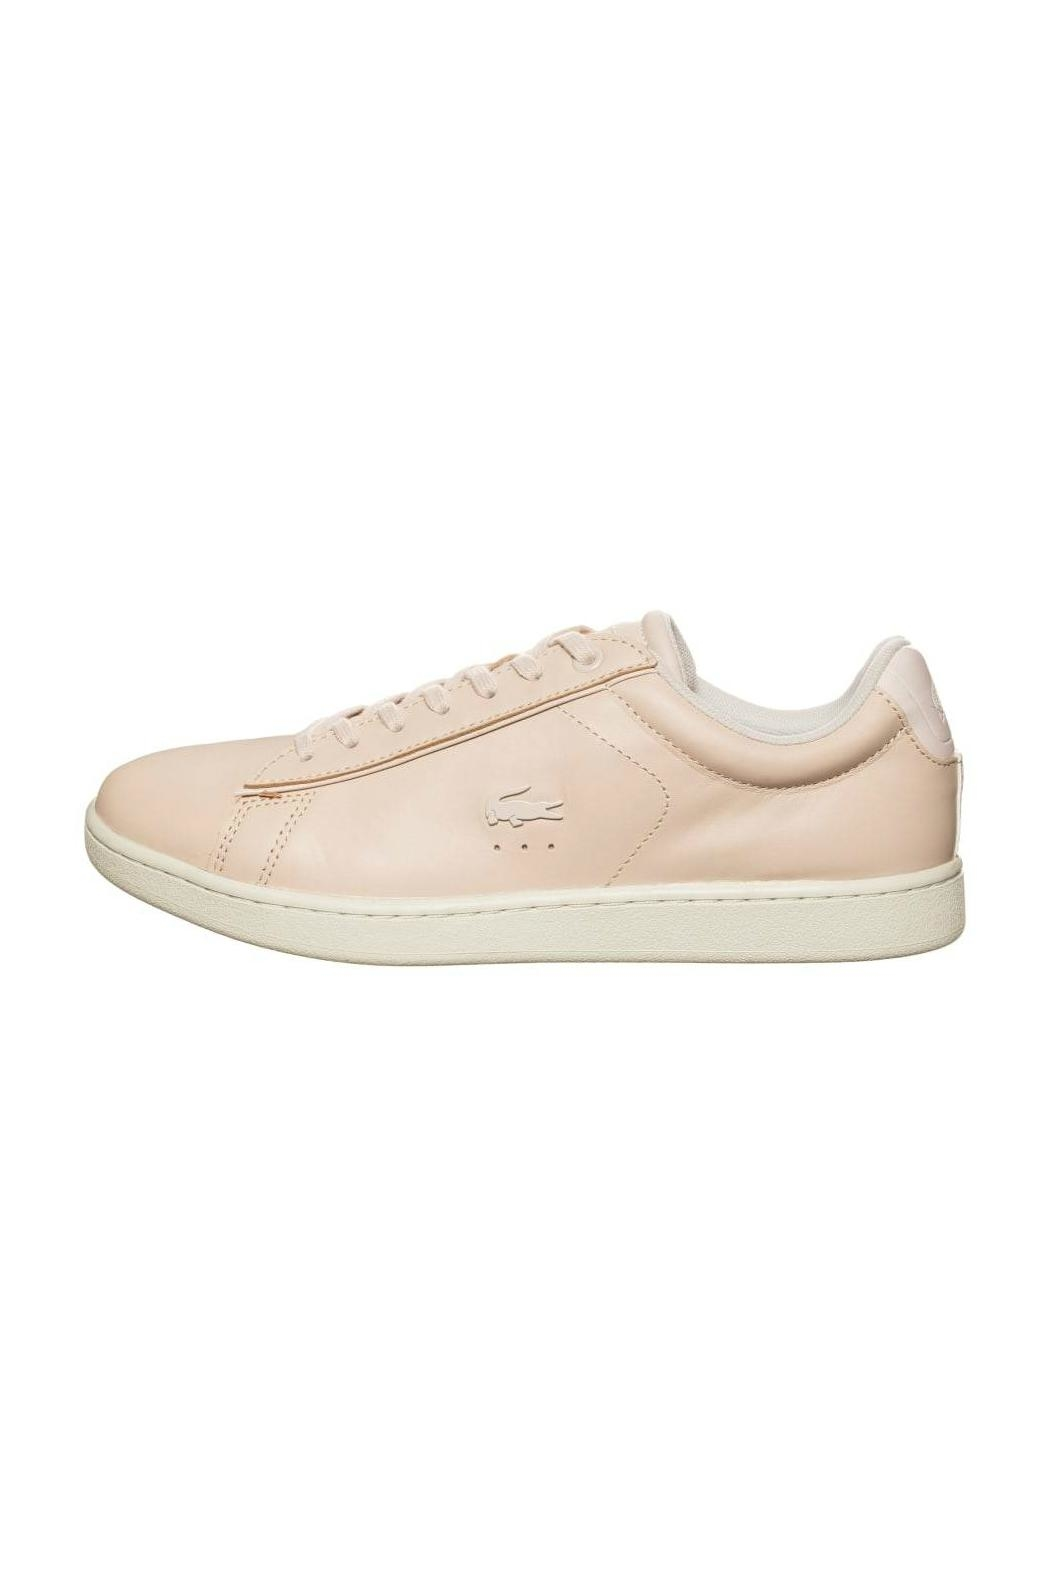 Lacoste Carnaby Evo Sneakers - Main Image